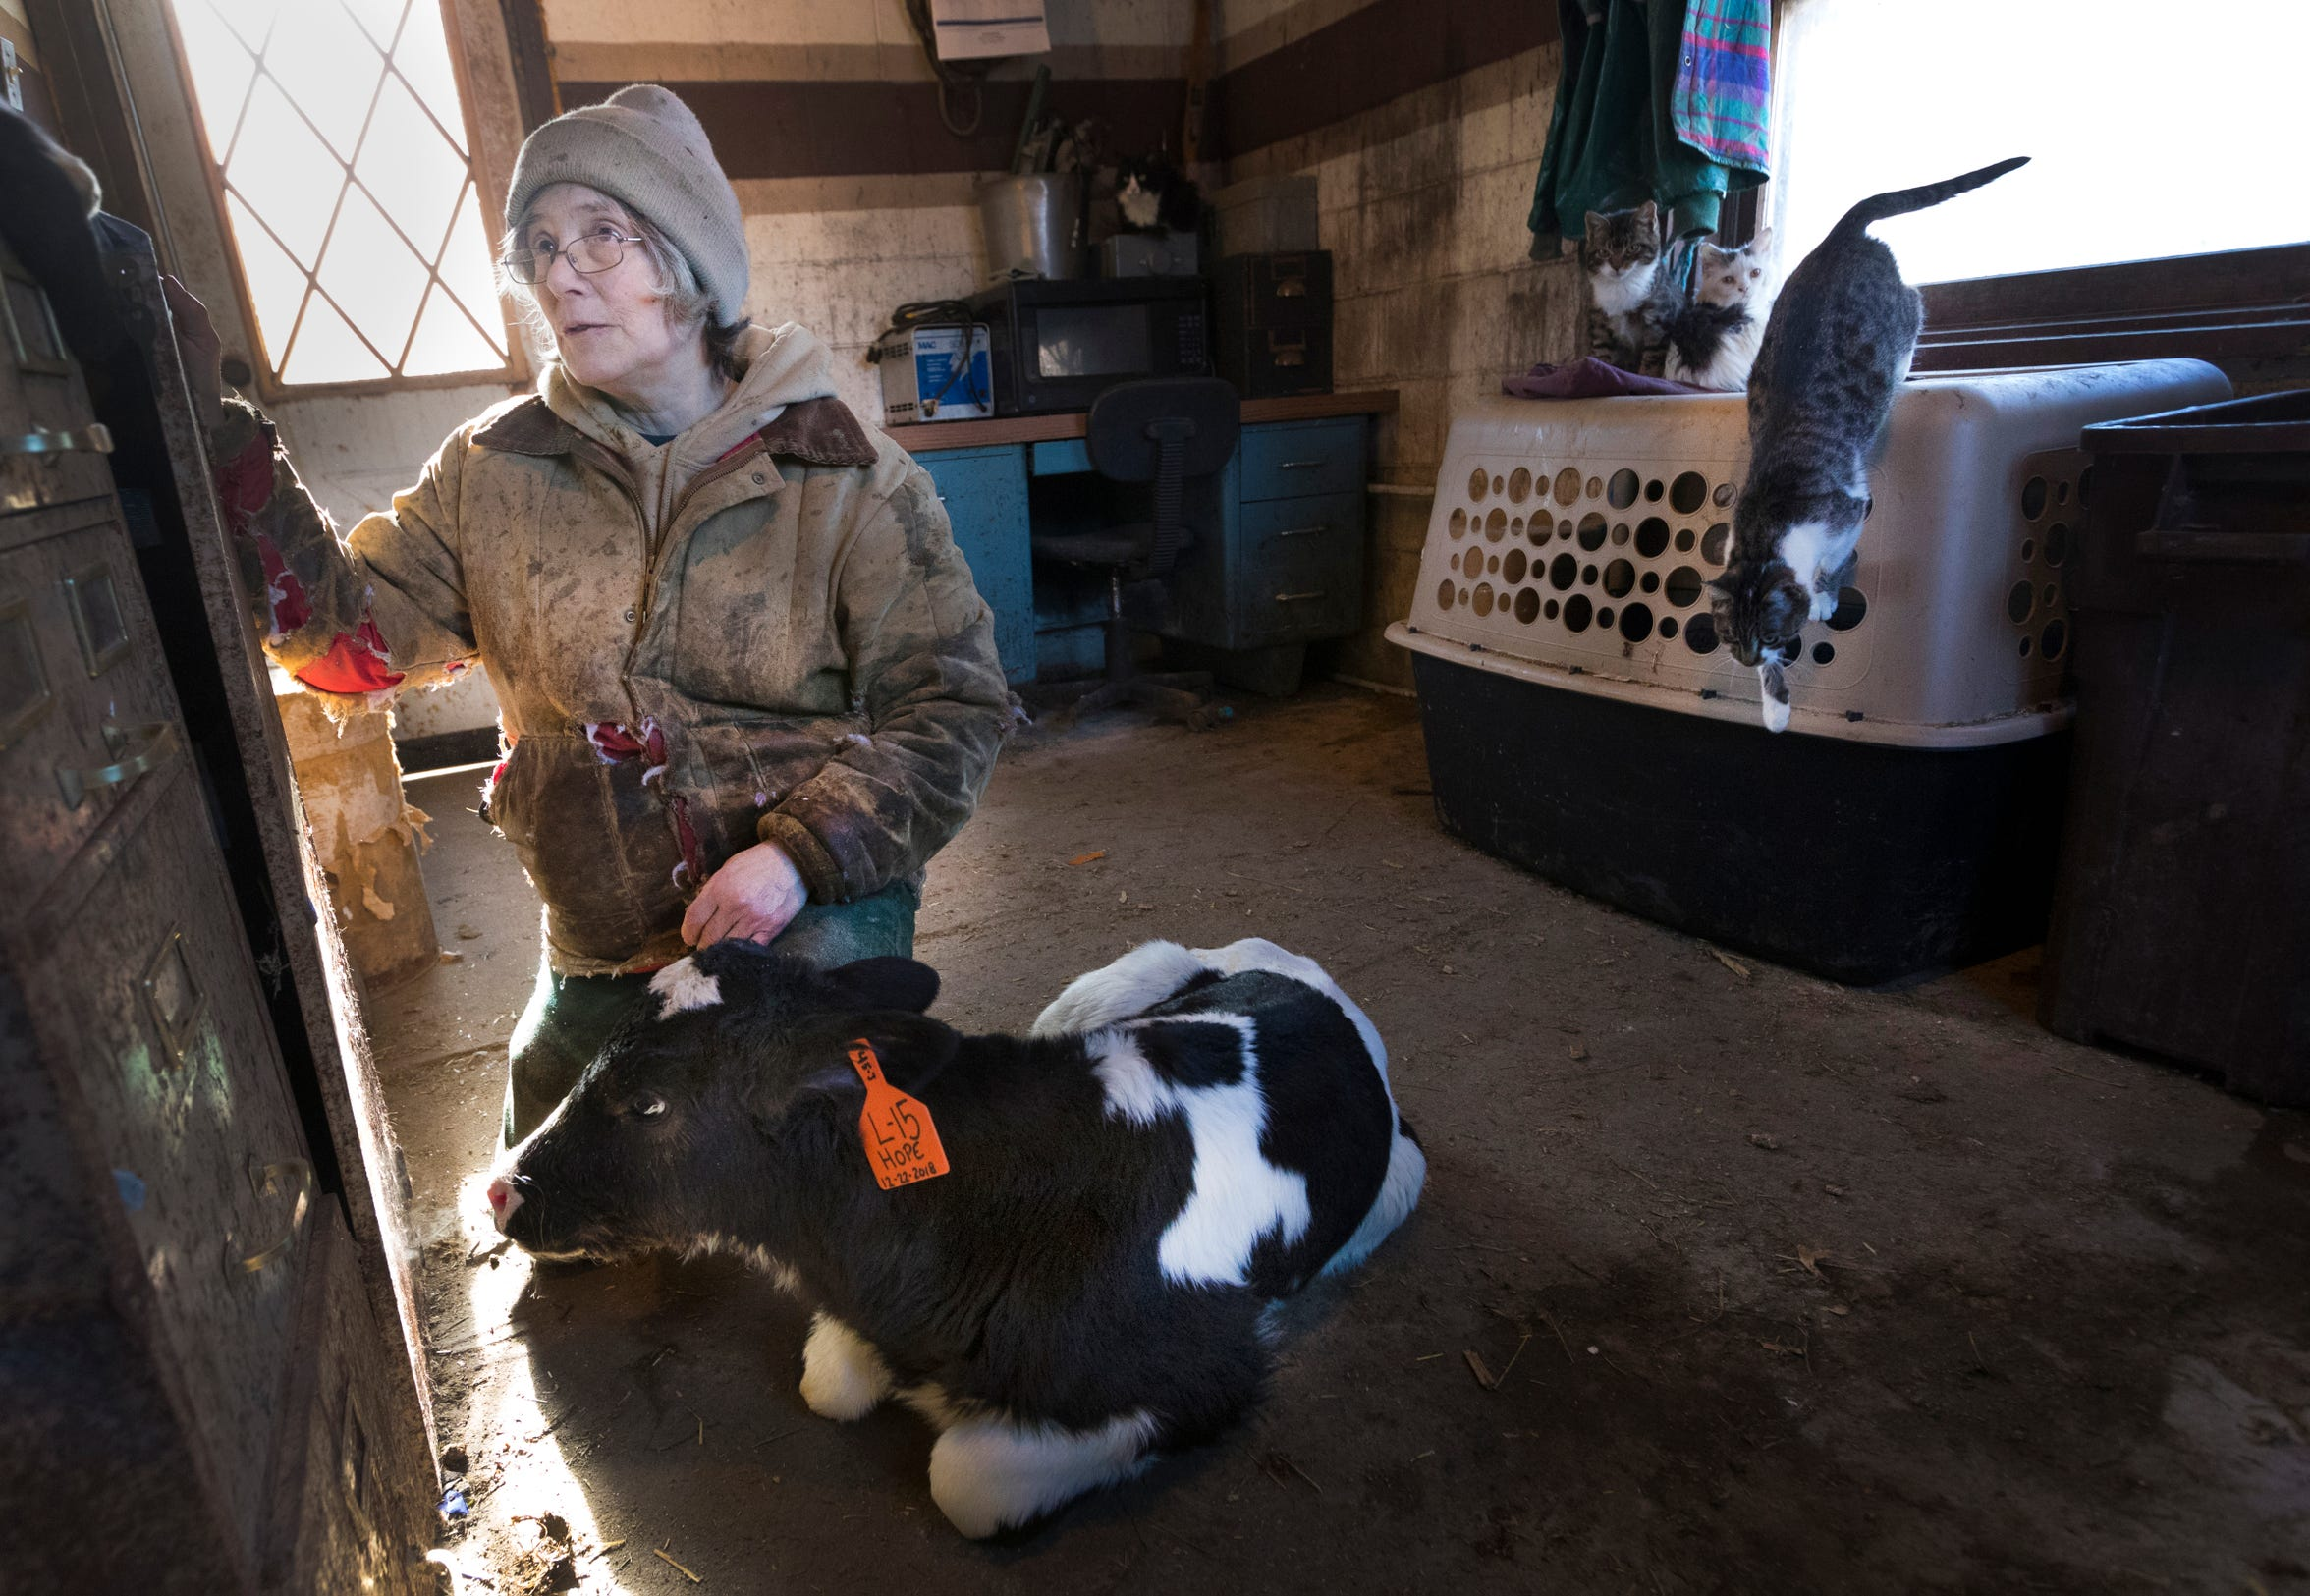 Sue Spaulding is shown with a 3-week-old calf, Hope, which had some health issues. It died a few days later.